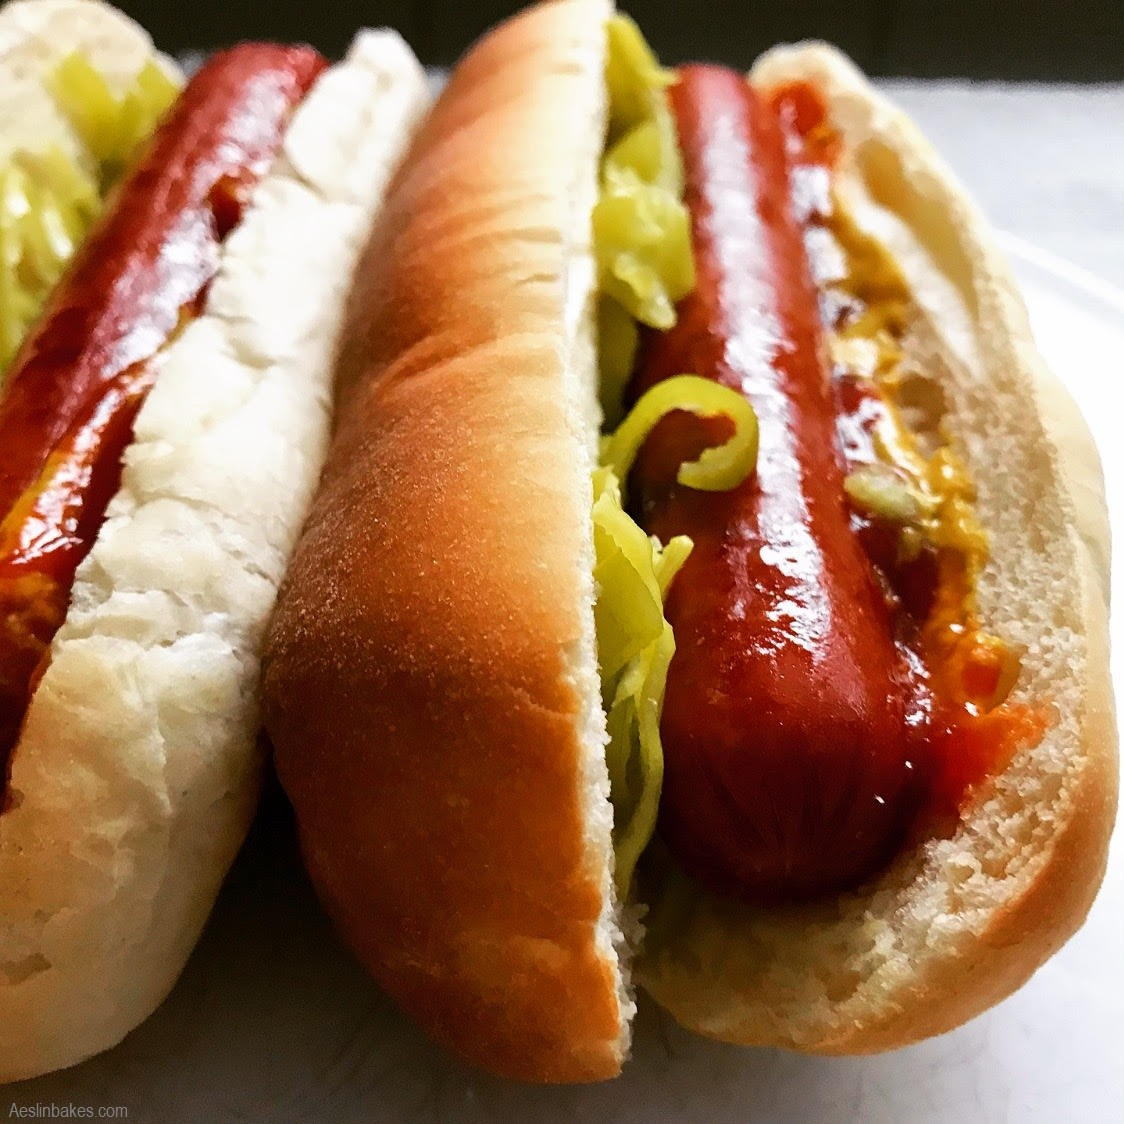 Hotdogs cooked front